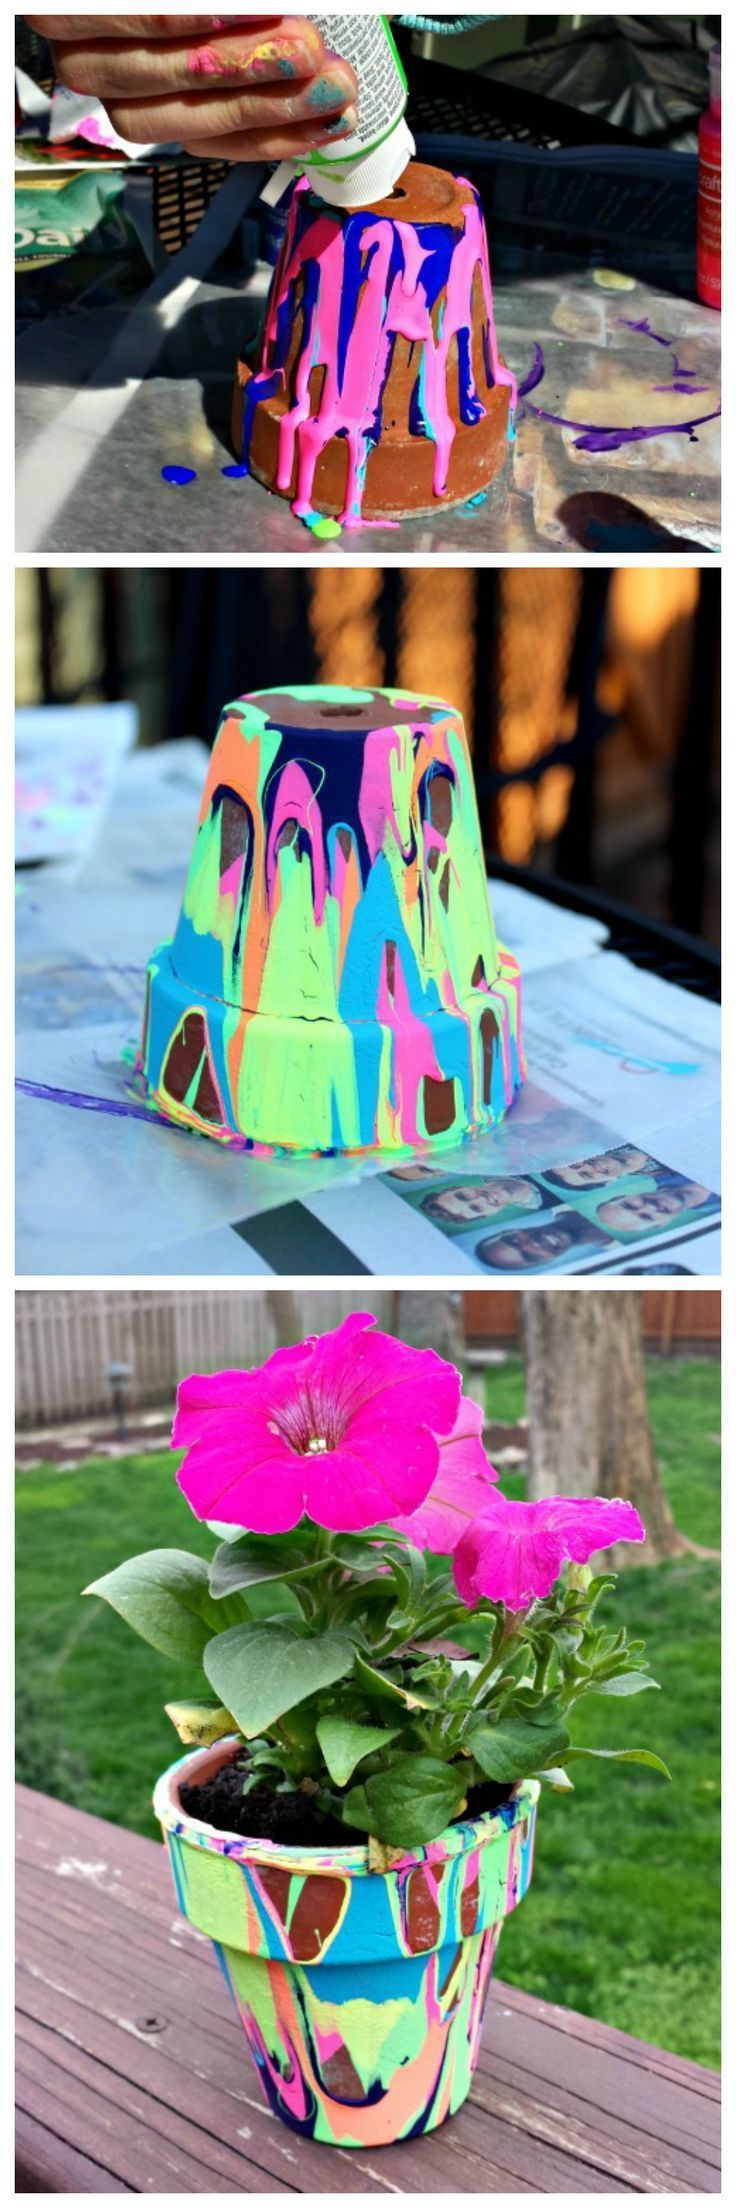 craft ideas for kids mothers day or teacher appreciation gift - Garden Art Ideas For Kids